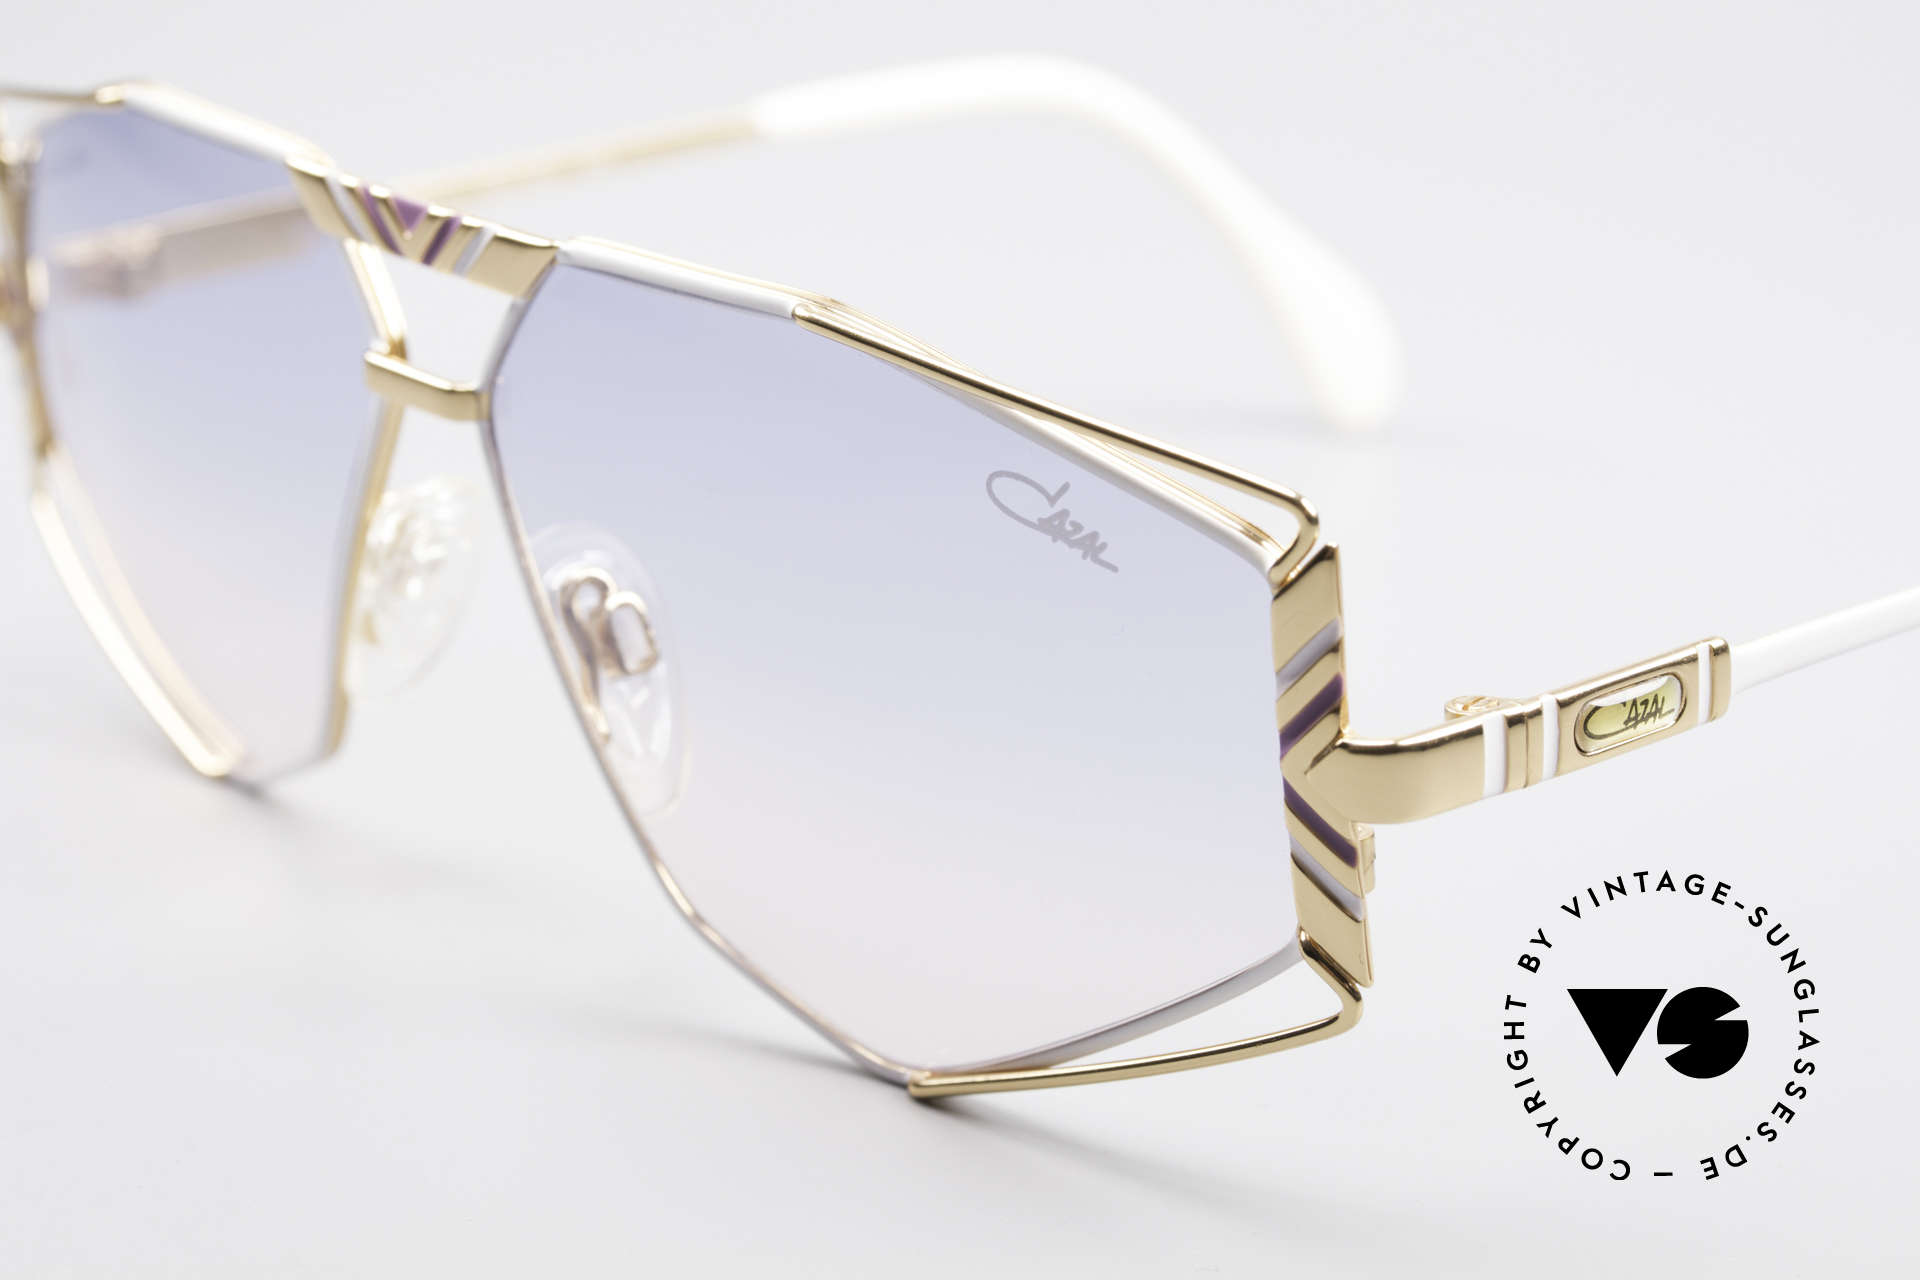 Cazal 956 Cari Zalloni Sunglasses, new old stock (like all our vintage Cazal sunnies), Made for Men and Women